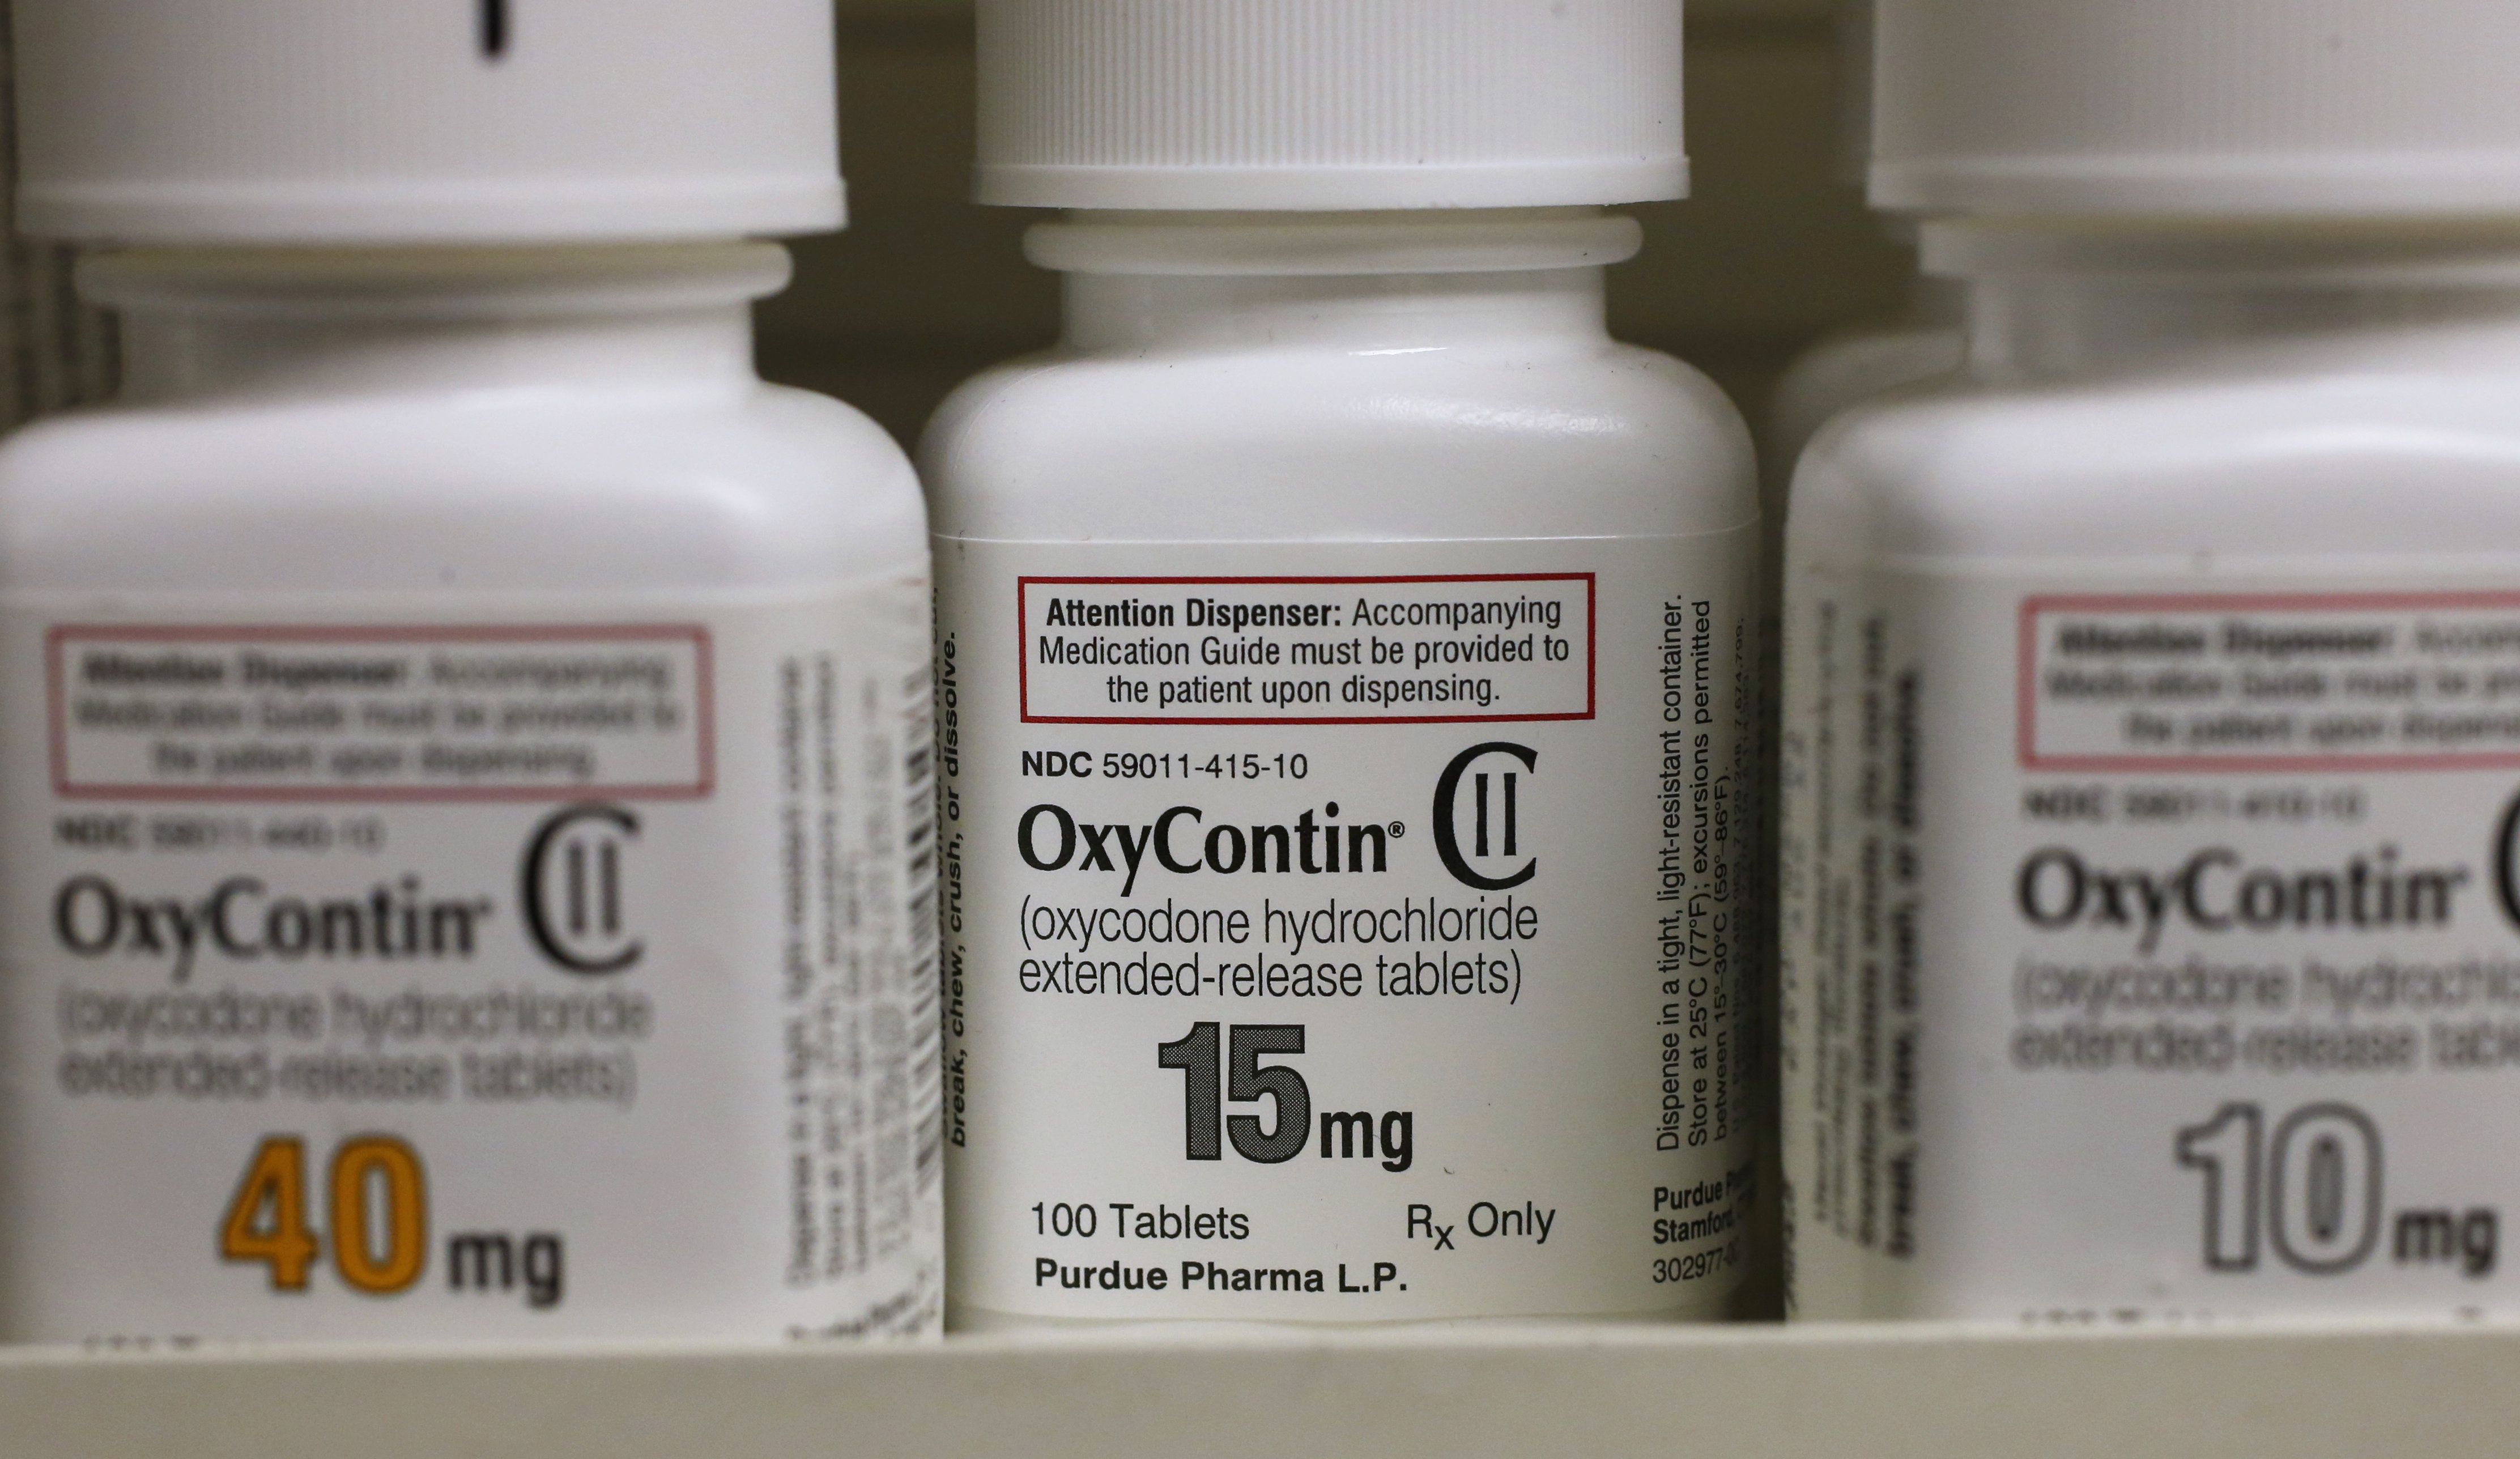 Bottles of Purdue Pharma L.P. OxyContin medication sit on a pharmacy shelf in Provo, Utah, U.S., on Wednesday, Aug. 31, 2016. A Nov. 2015 forecast from health data firm IMS Health expects global sales of brand and generic prescription drugs, and nonprescription medicines, to total $1.4 trillion in 2020. Photographer: George Frey/Bloomberg via Getty Images